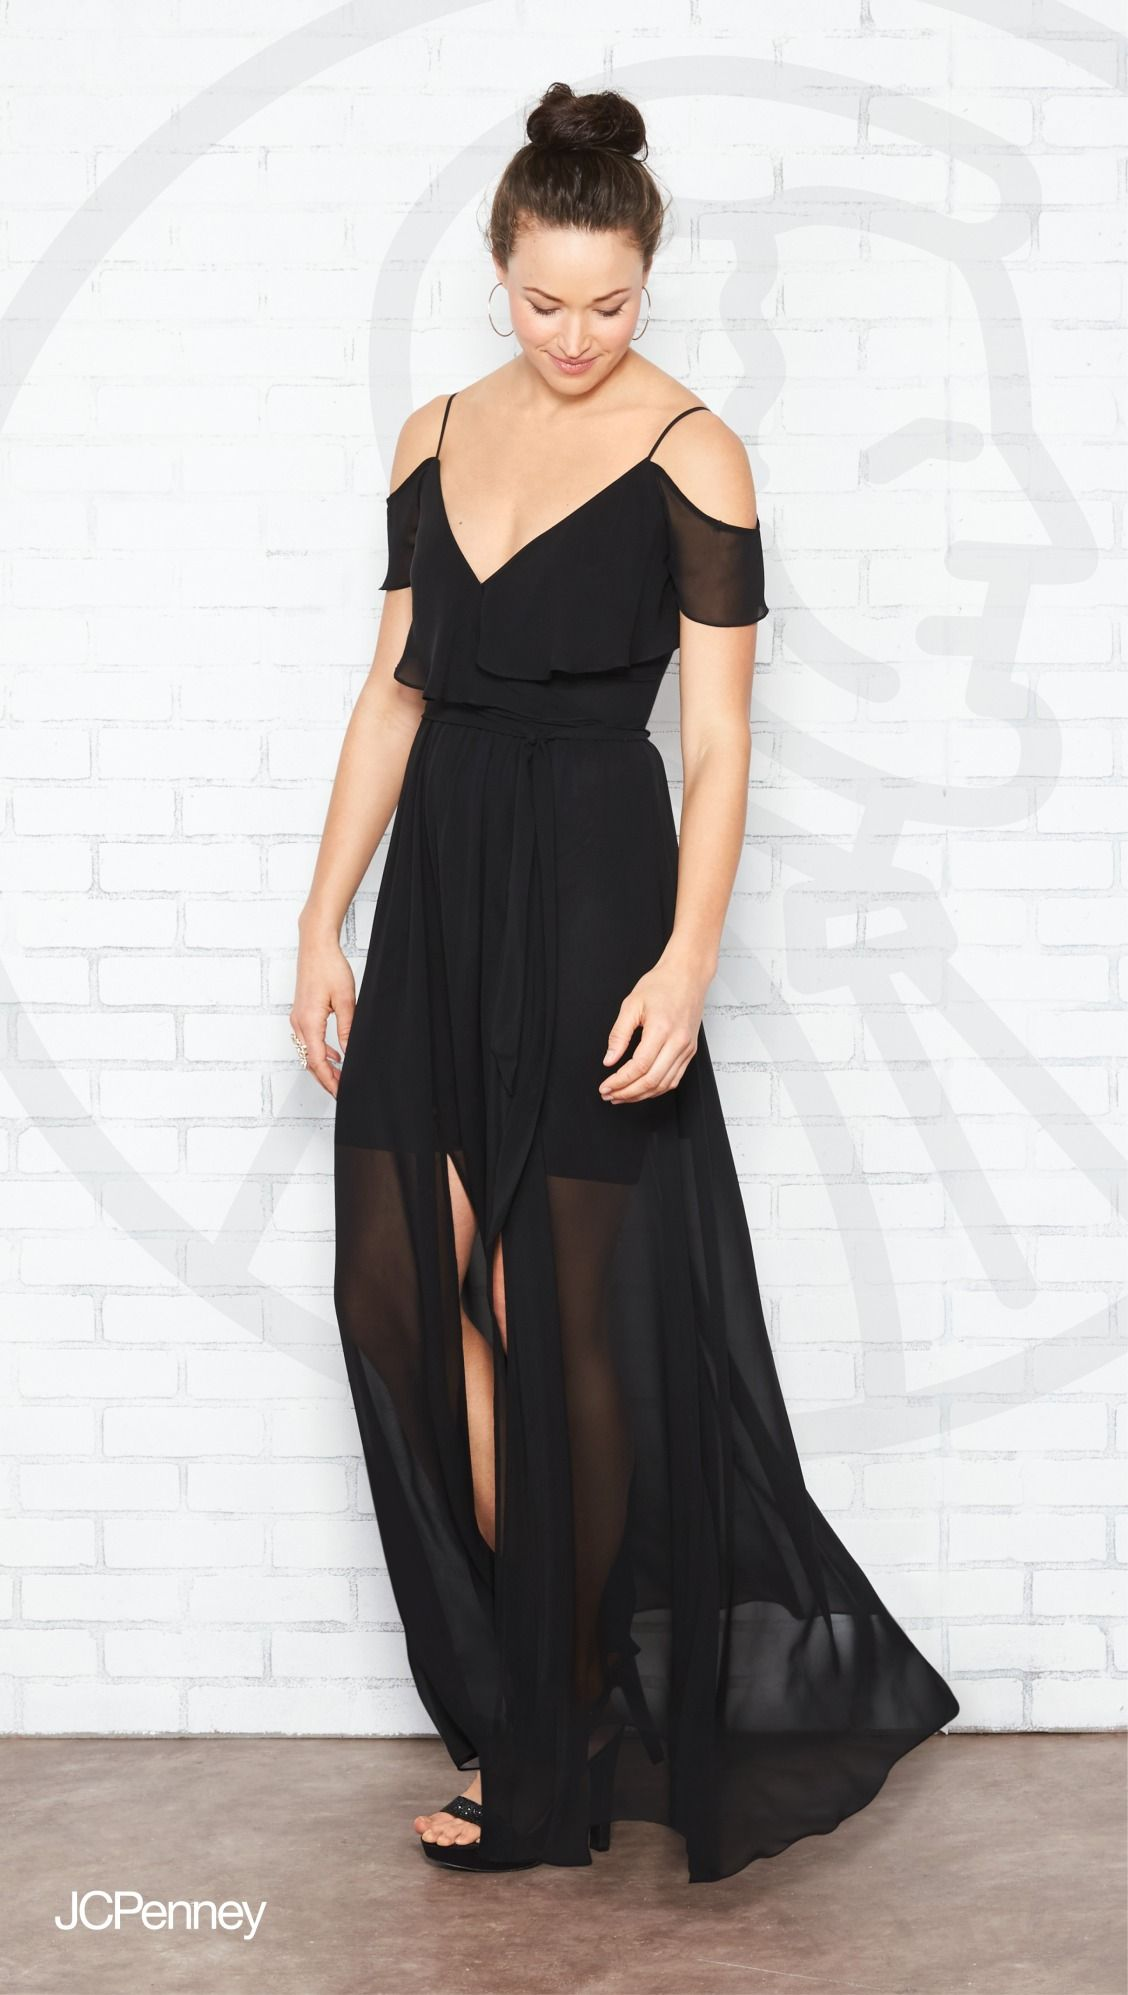 A Black Maxi Dress With Ruffles And That Just Right Mix Of Romantic And Casual Makes This Dress A Must Have For Summer It S A G Pretty Dresses Fashion Dresses [ 1995 x 1128 Pixel ]